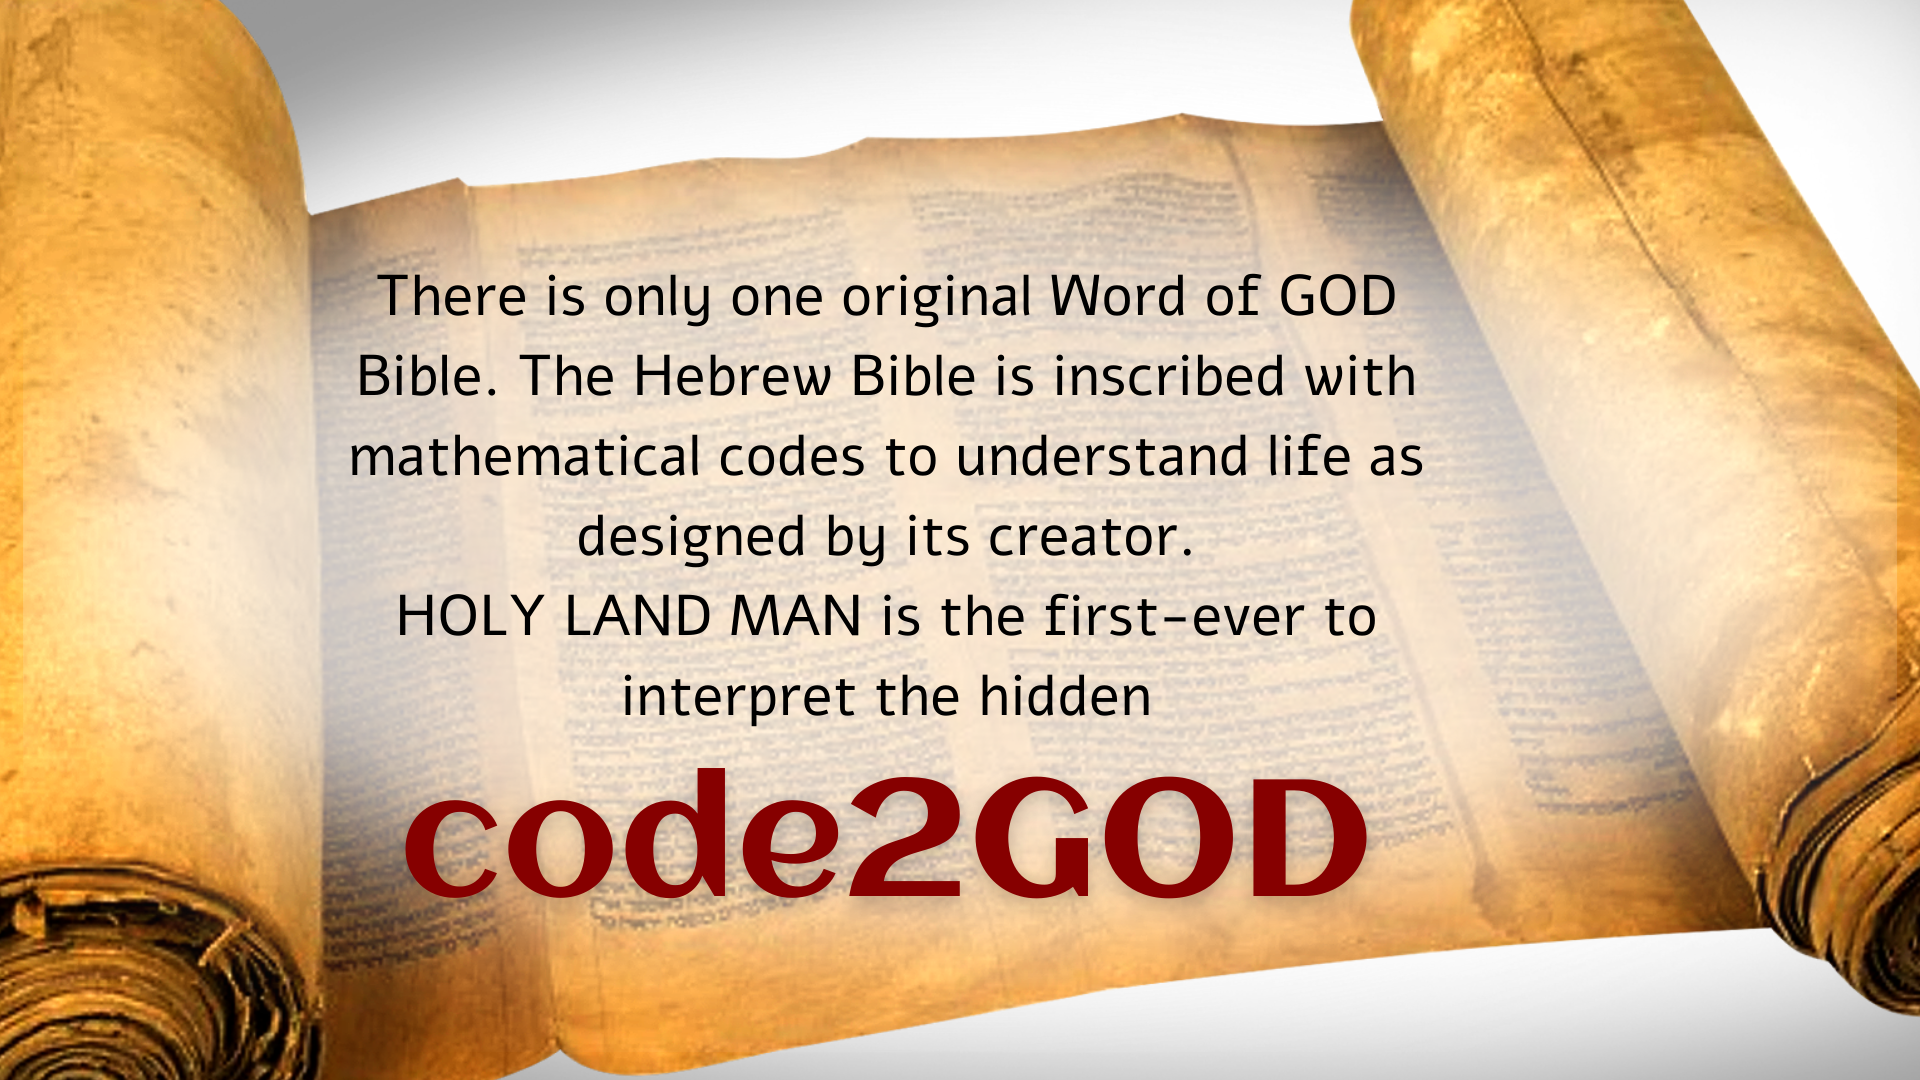 code2GOD invented by HOLY LAND MAN & Don Juravin